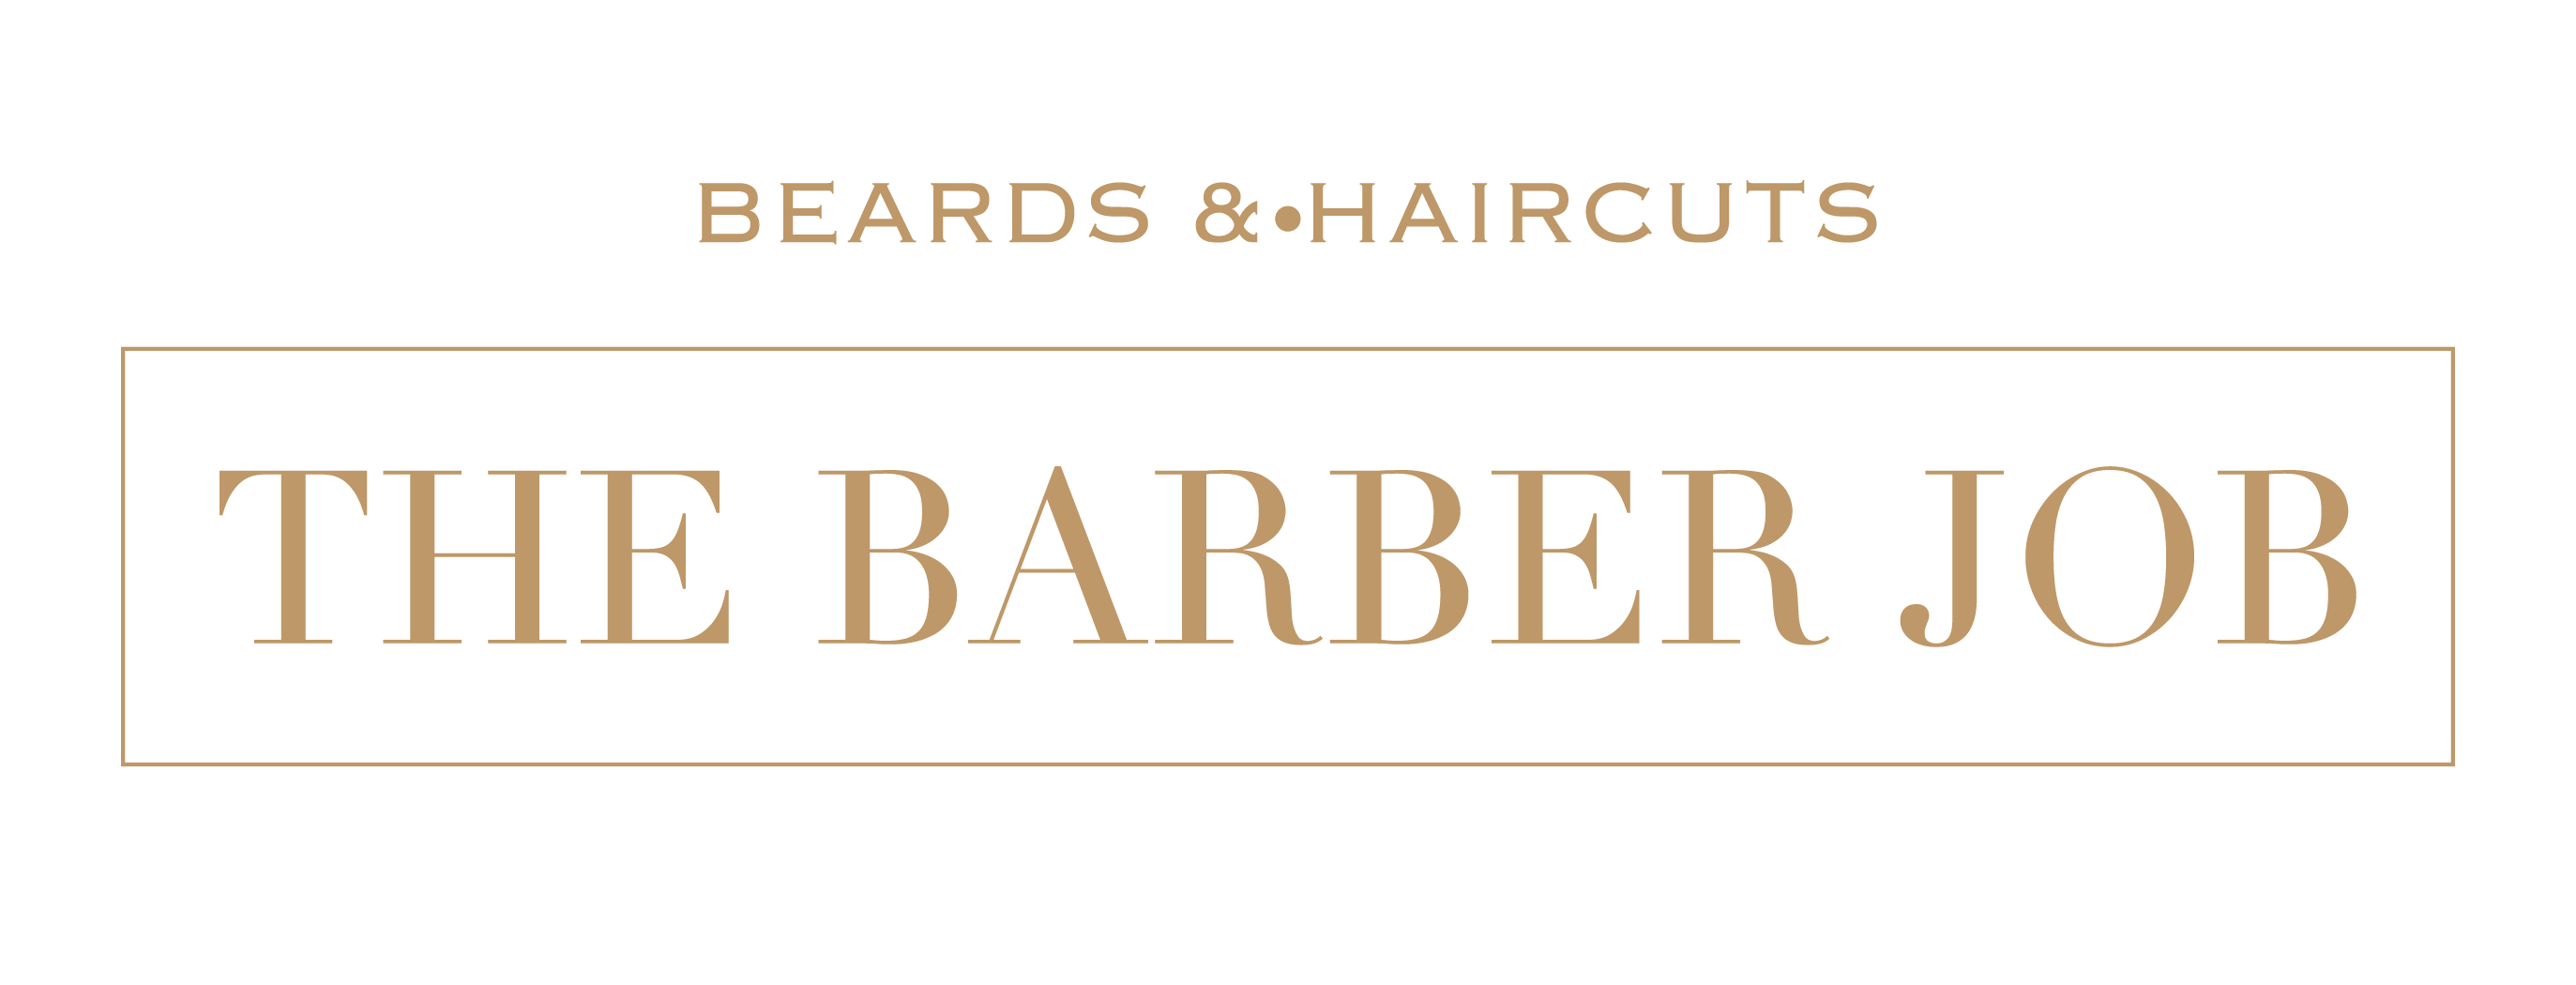 The Barberjob